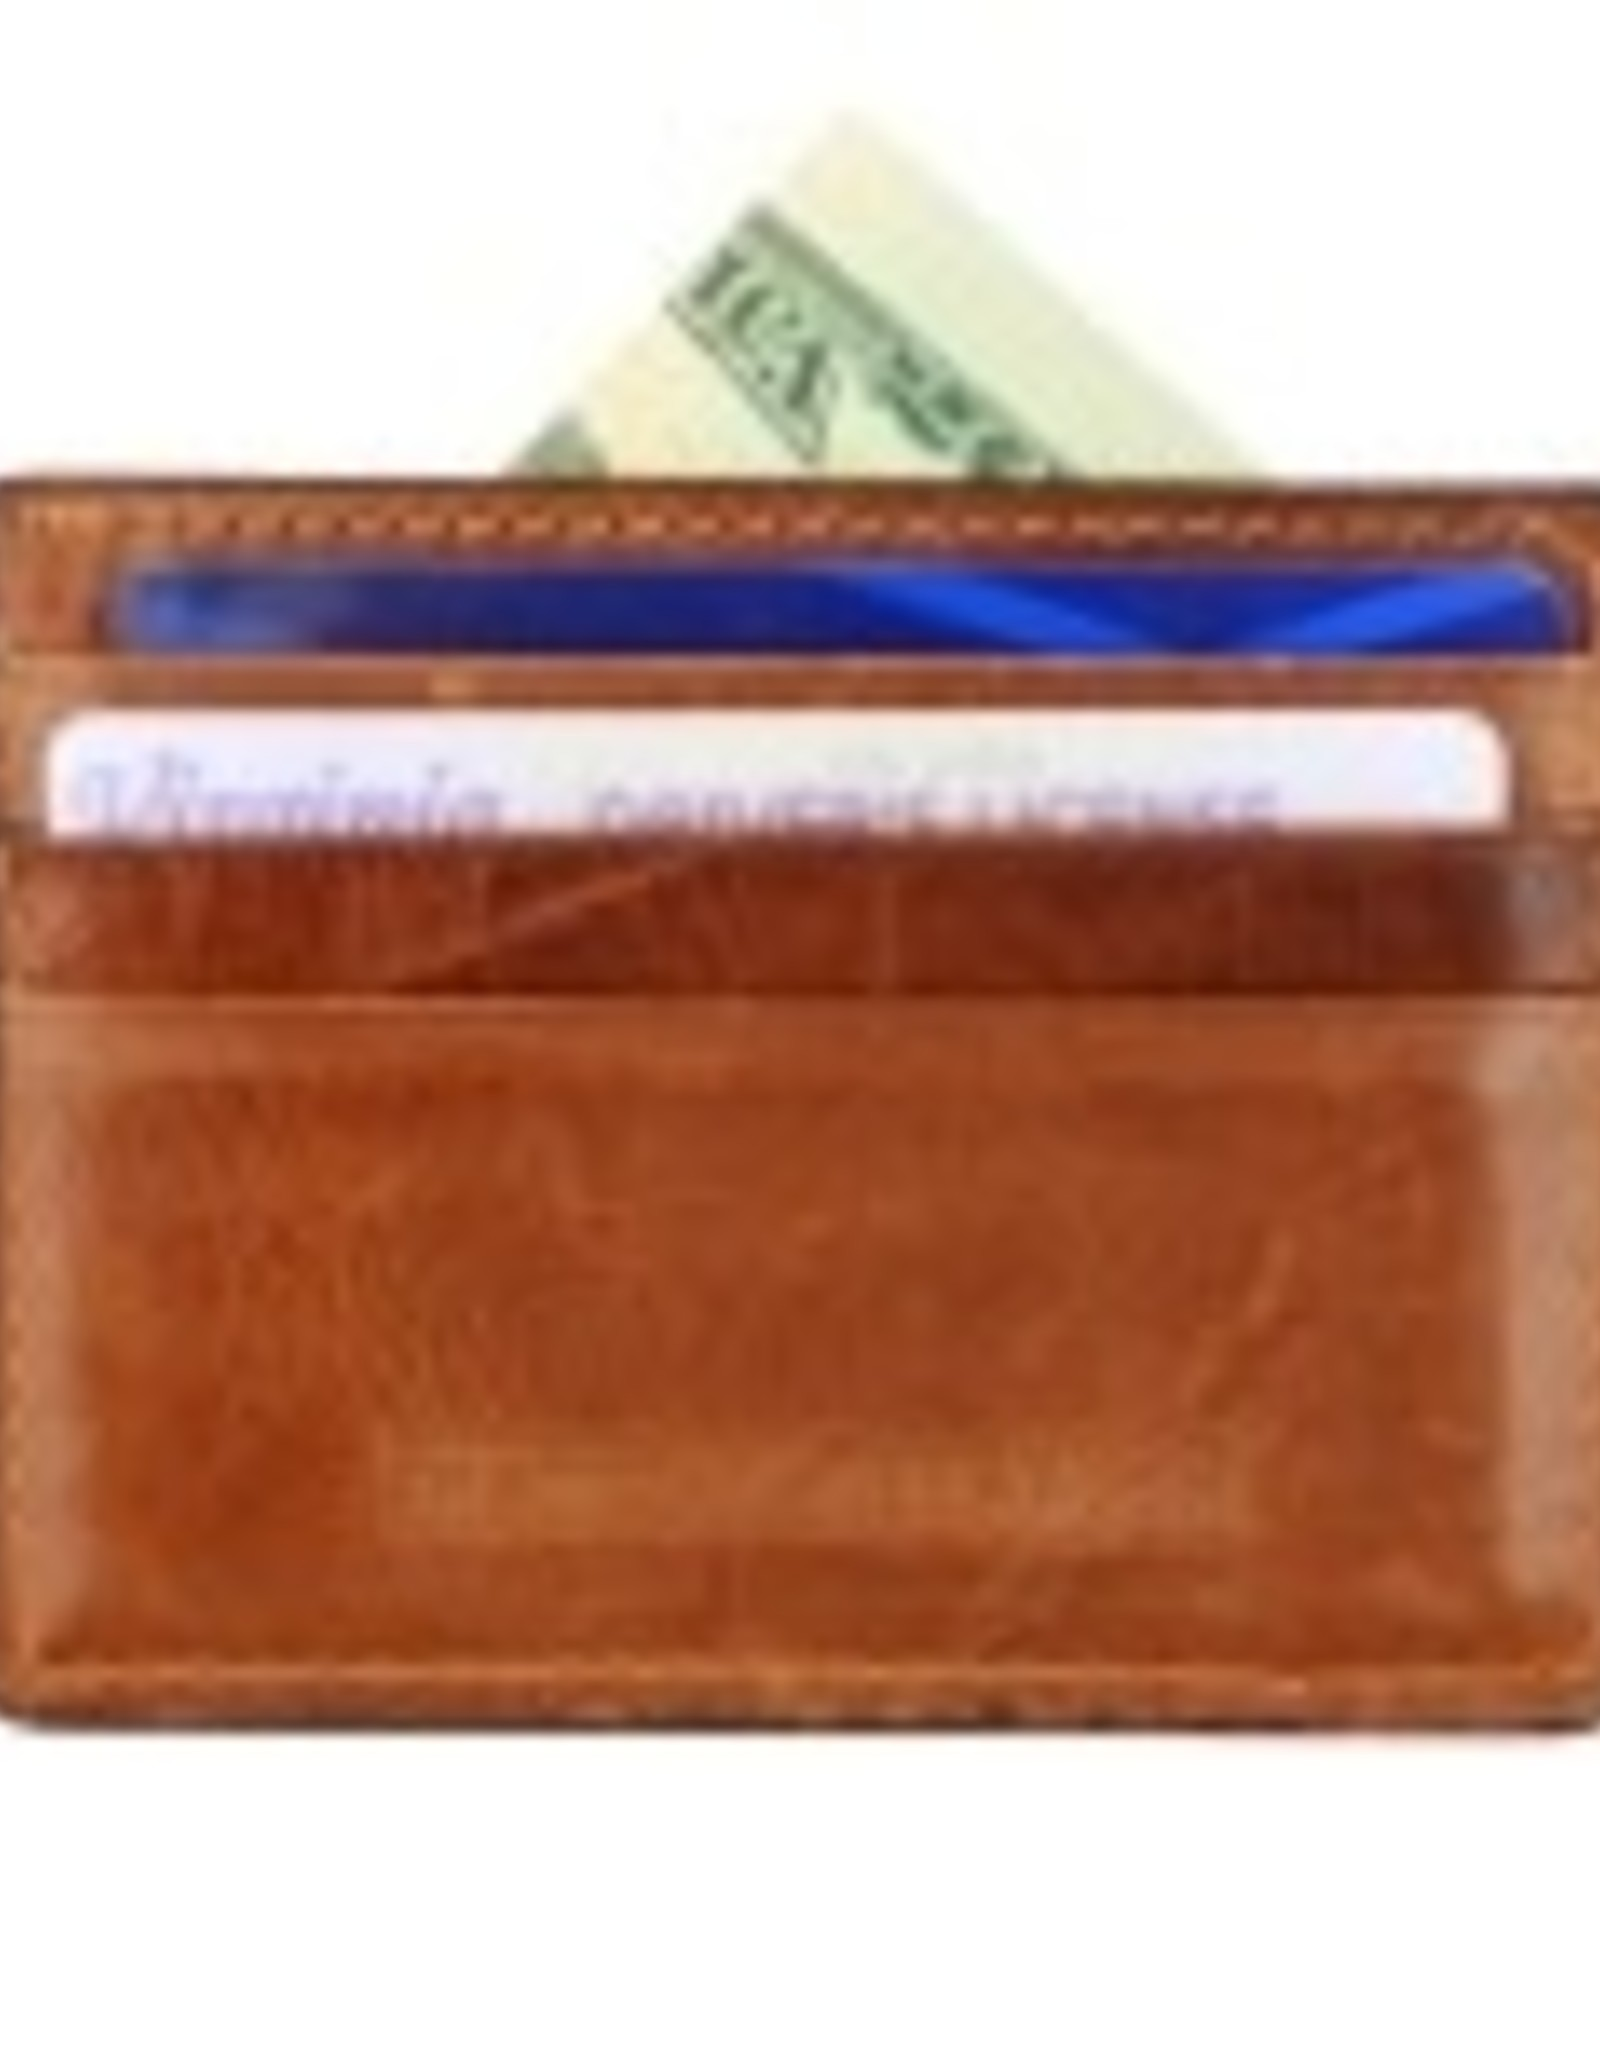 Smathers & Branson Dad's Credit Card Wallet